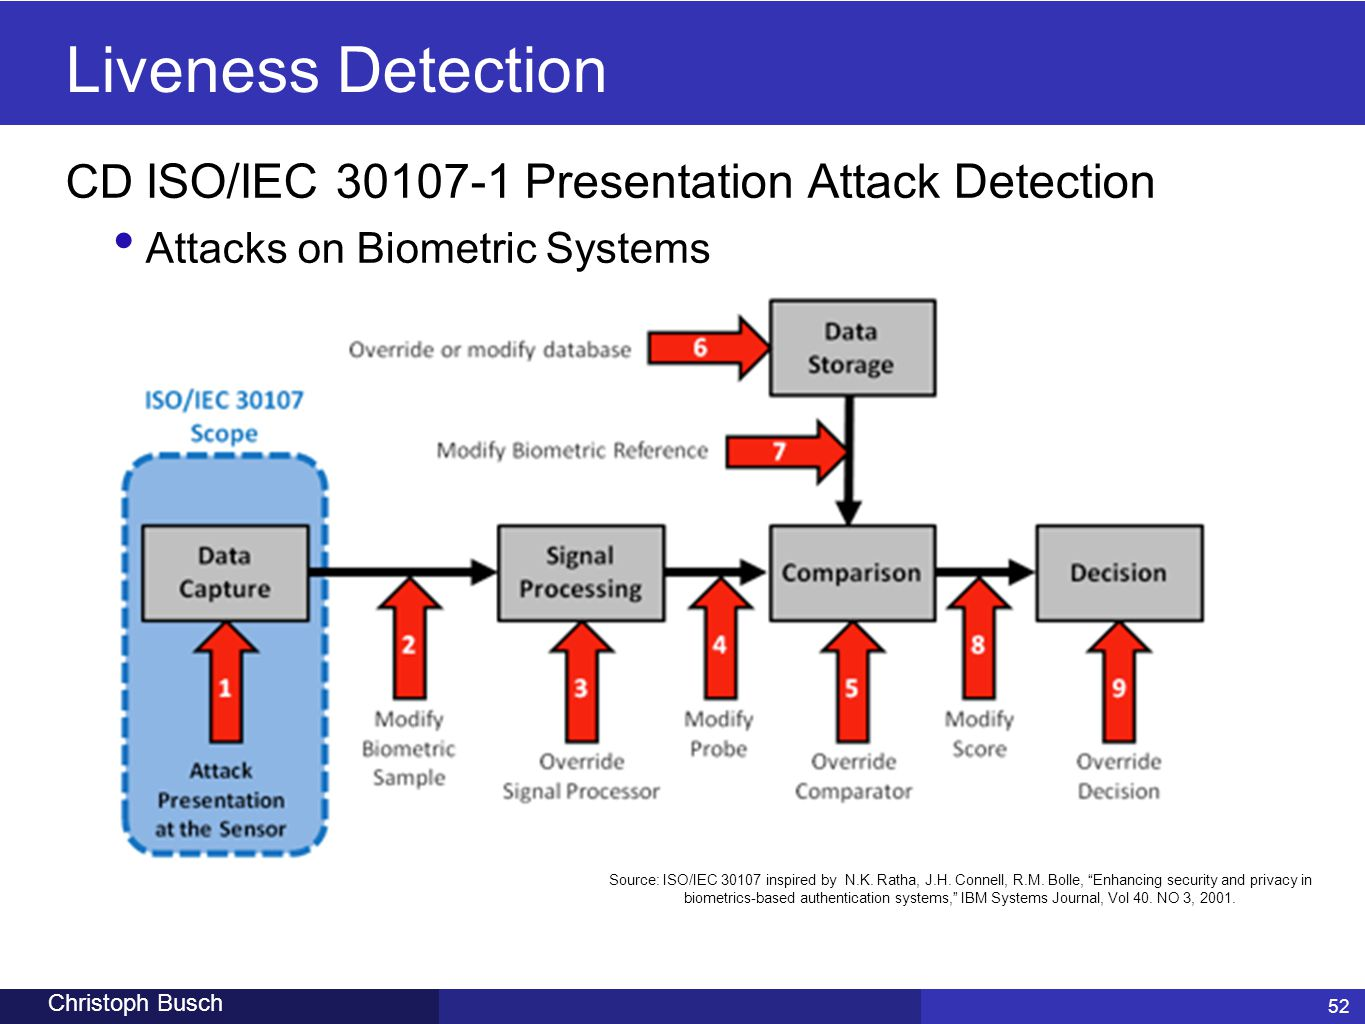 Liveness Detection CD ISO/IEC 30107-1 Presentation Attack Detection